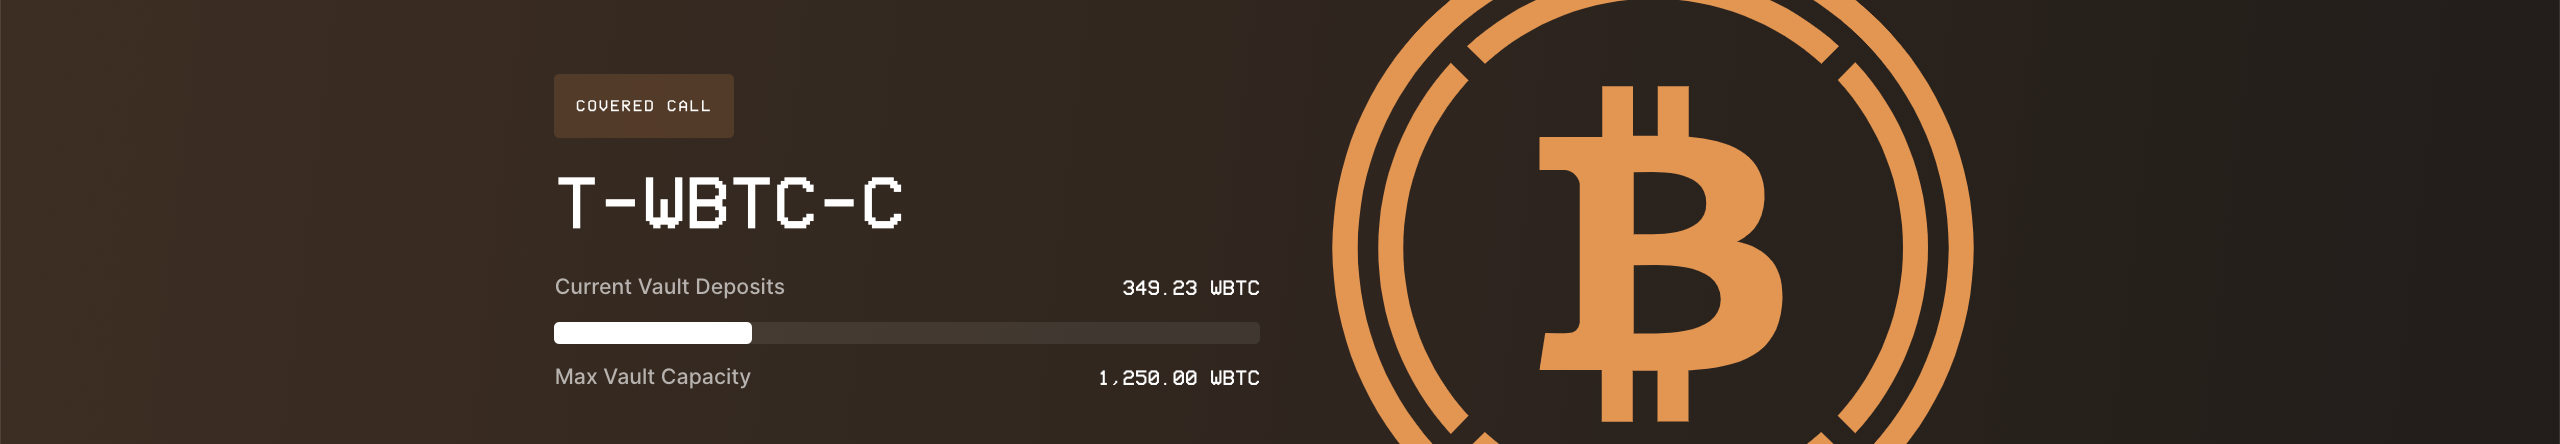 wBTC covered call.png